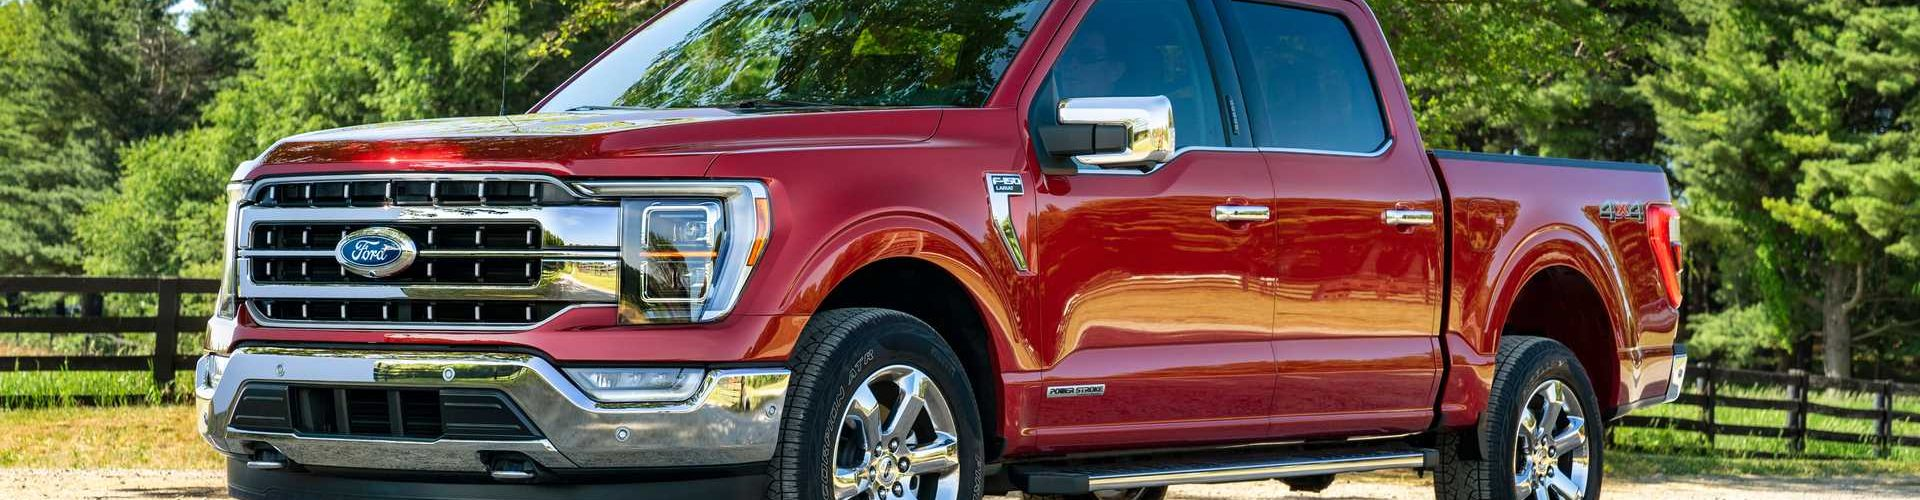 Ford f150 windshield replacement